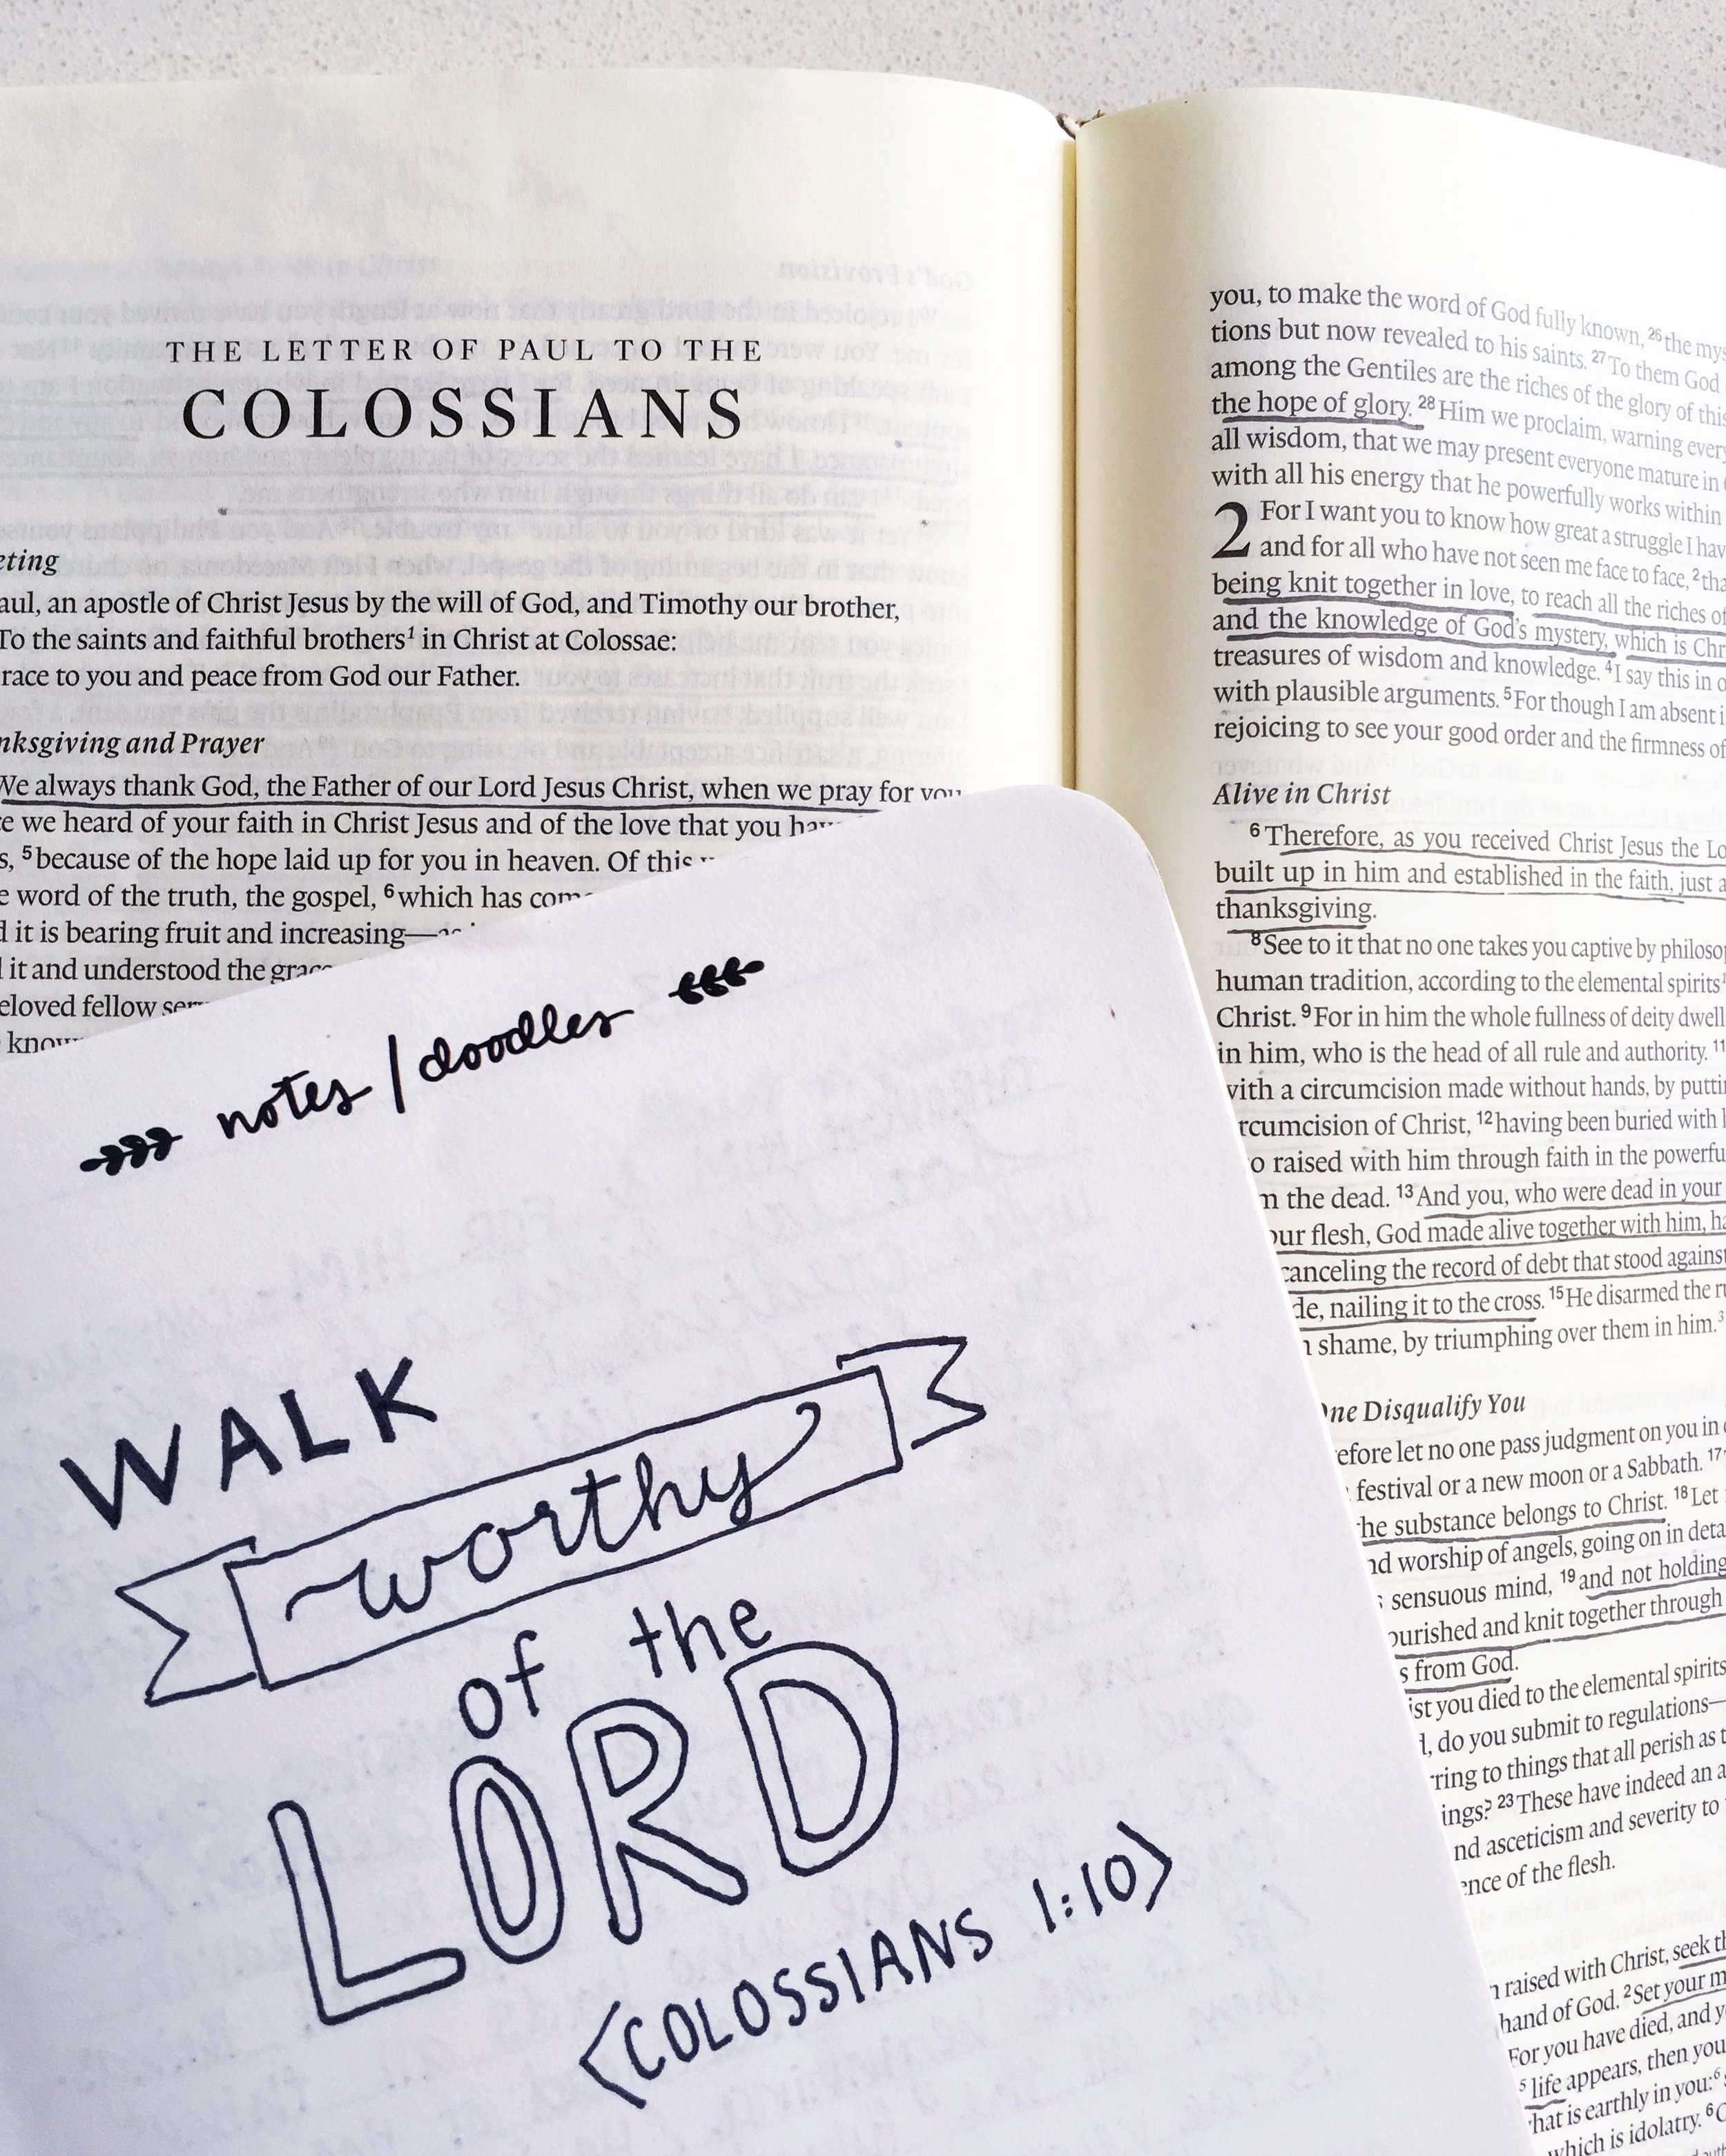 Dwell Deeply Doodle | Colossians 1:10 | By Susanna Zach